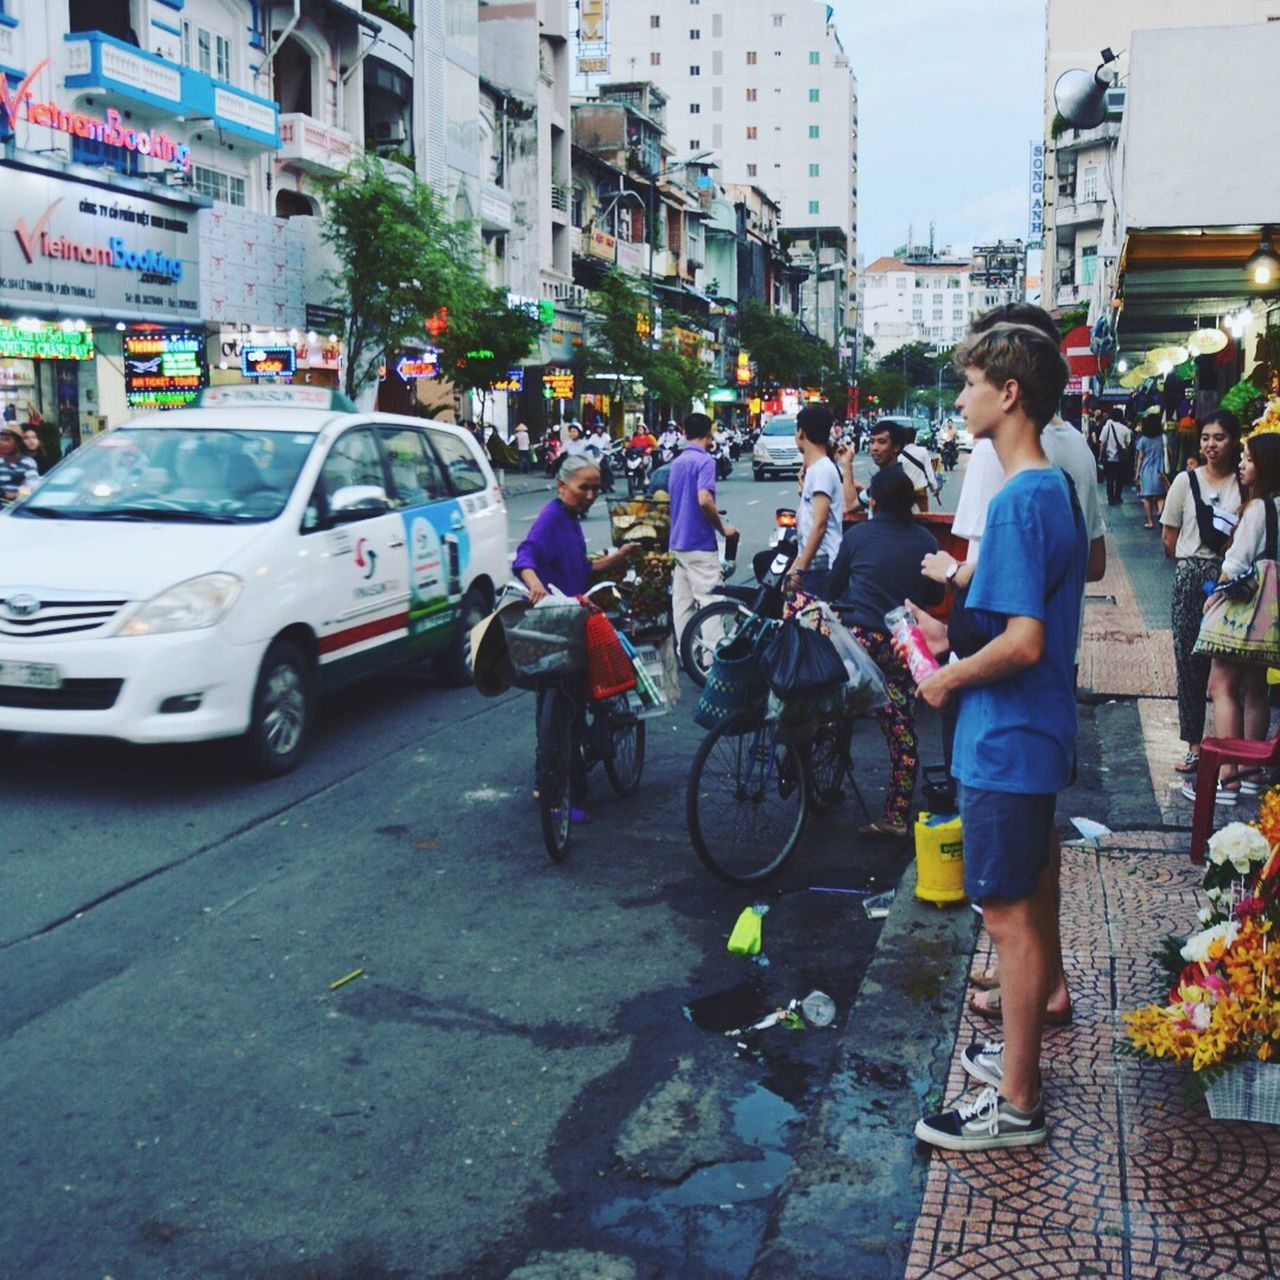 land vehicle, city, building exterior, mode of transport, transportation, bicycle, street, built structure, real people, car, architecture, city life, outdoors, day, full length, holding, lifestyles, men, large group of people, standing, women, young adult, adult, people, adults only